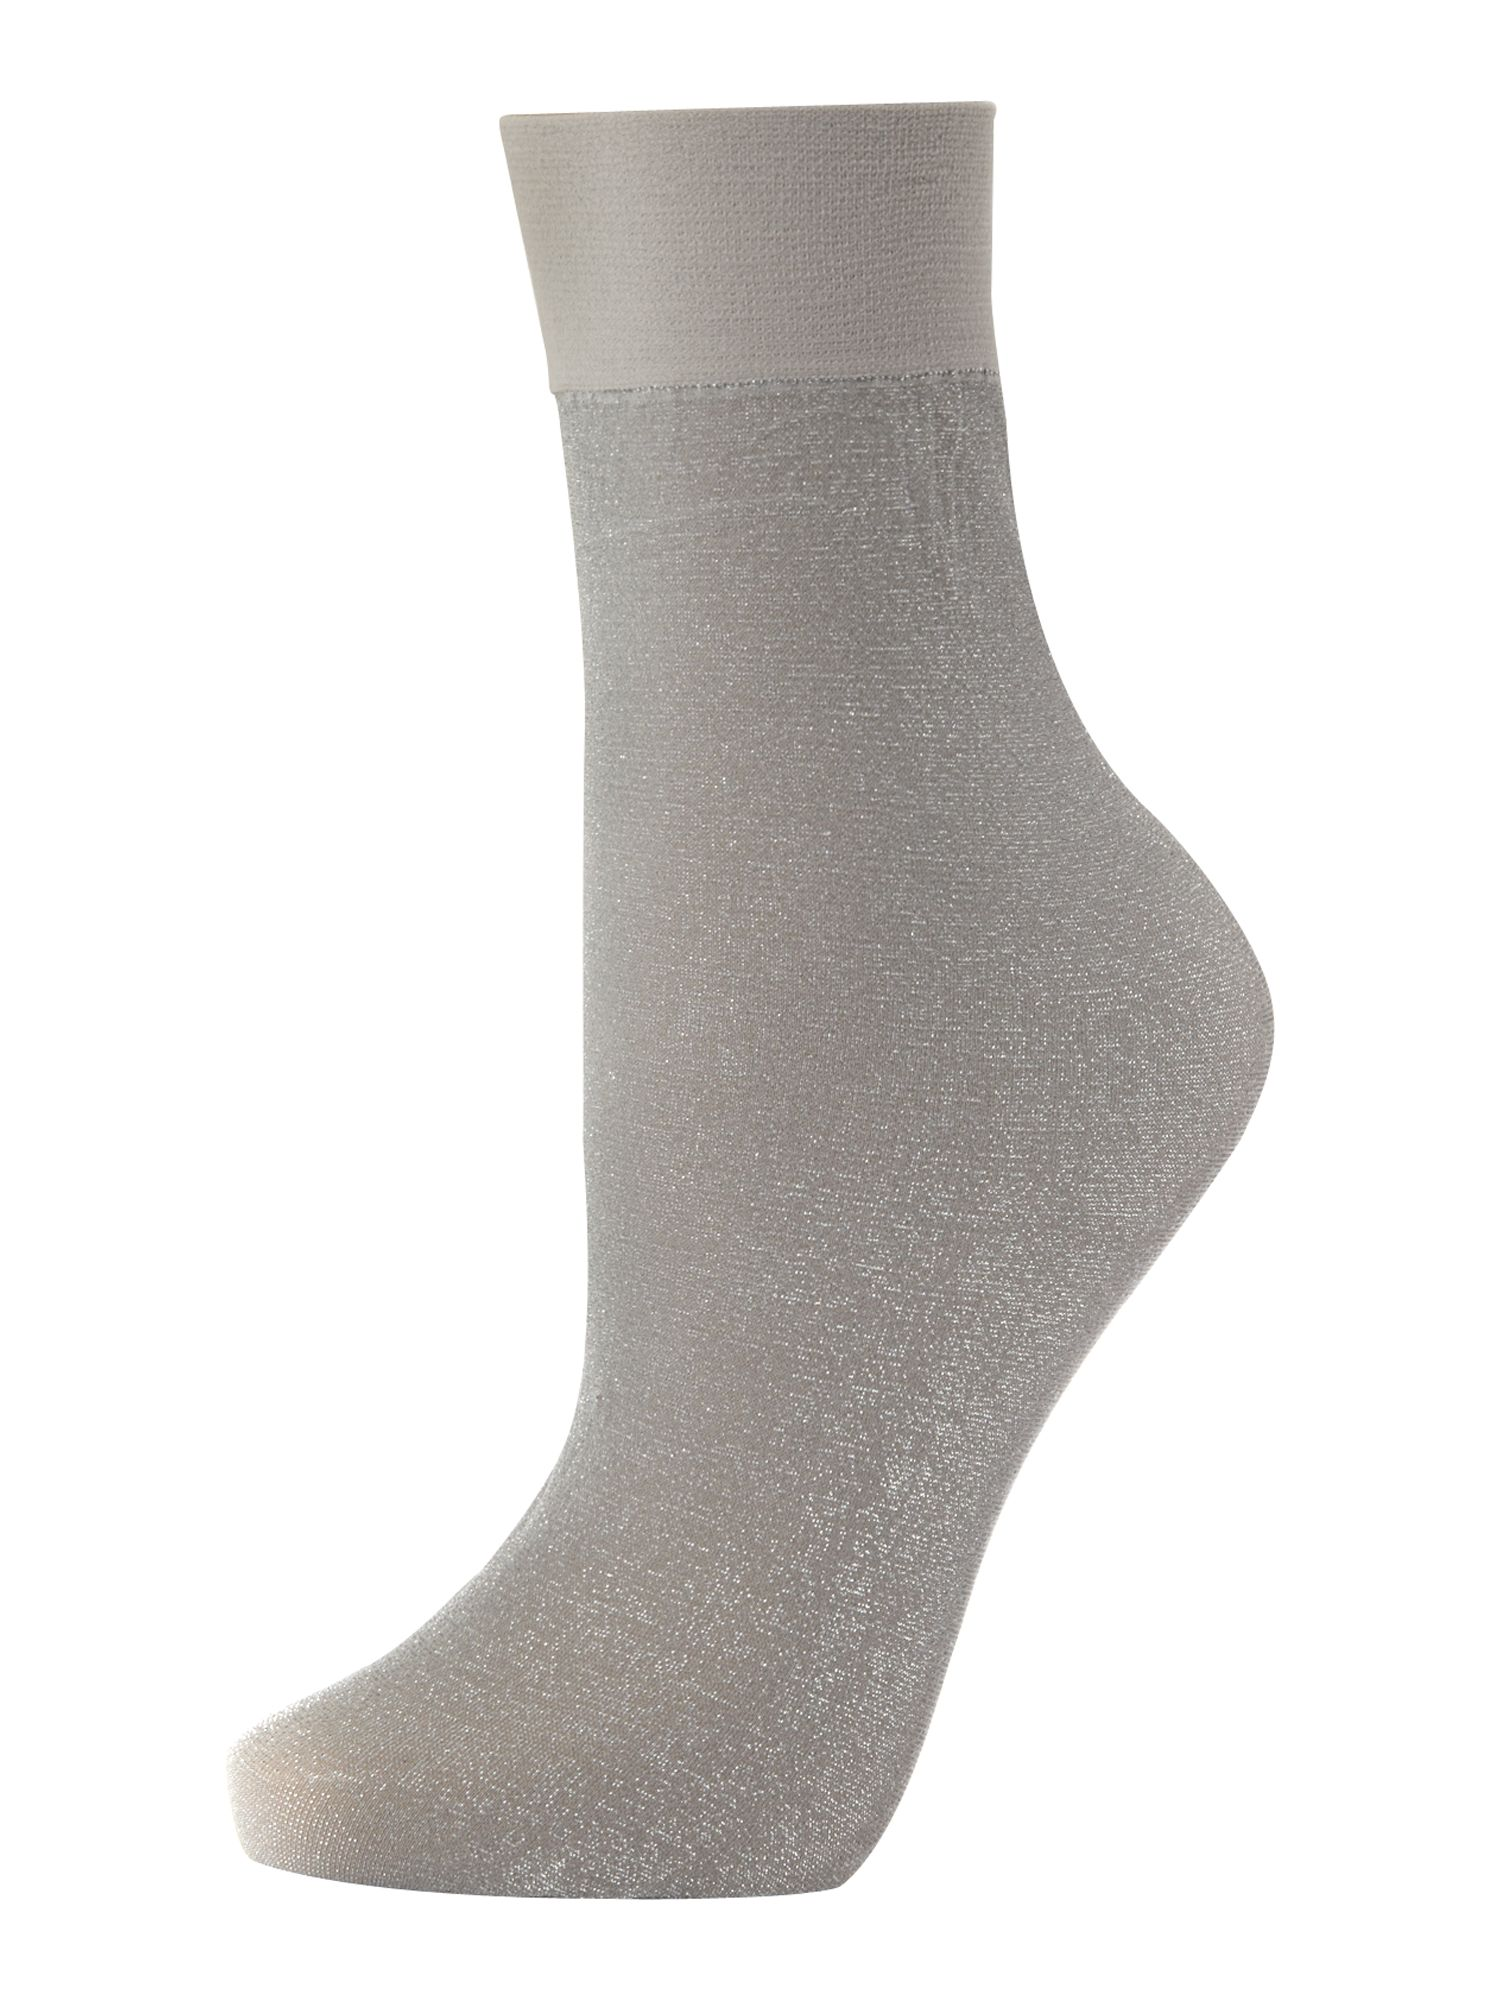 Lurex sparkle ankle socks